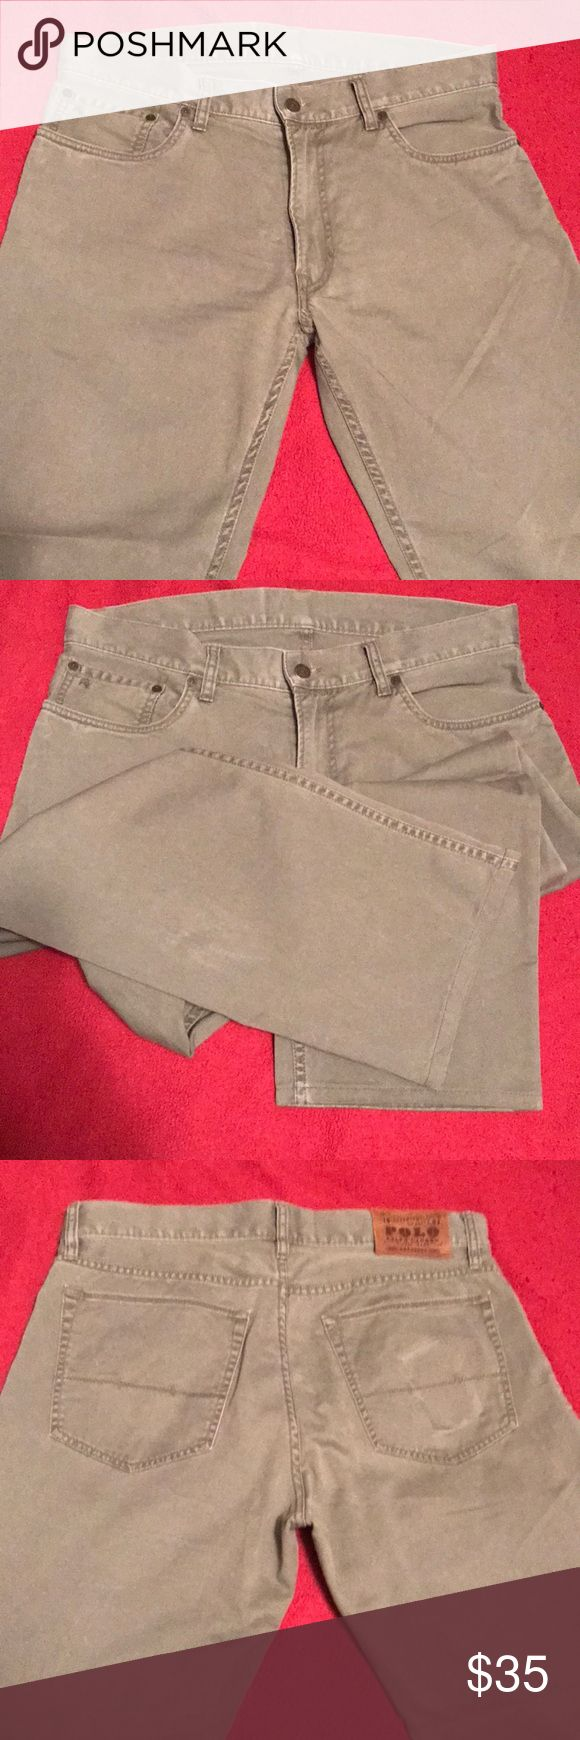 """Ralph Lauren 650 Chino Pants Men's chino pants, straight leg fit.  32"""" inseam. Low rise. excellent condition, worn only a few times. Lauren Ralph Lauren Pants Chinos & Khakis"""